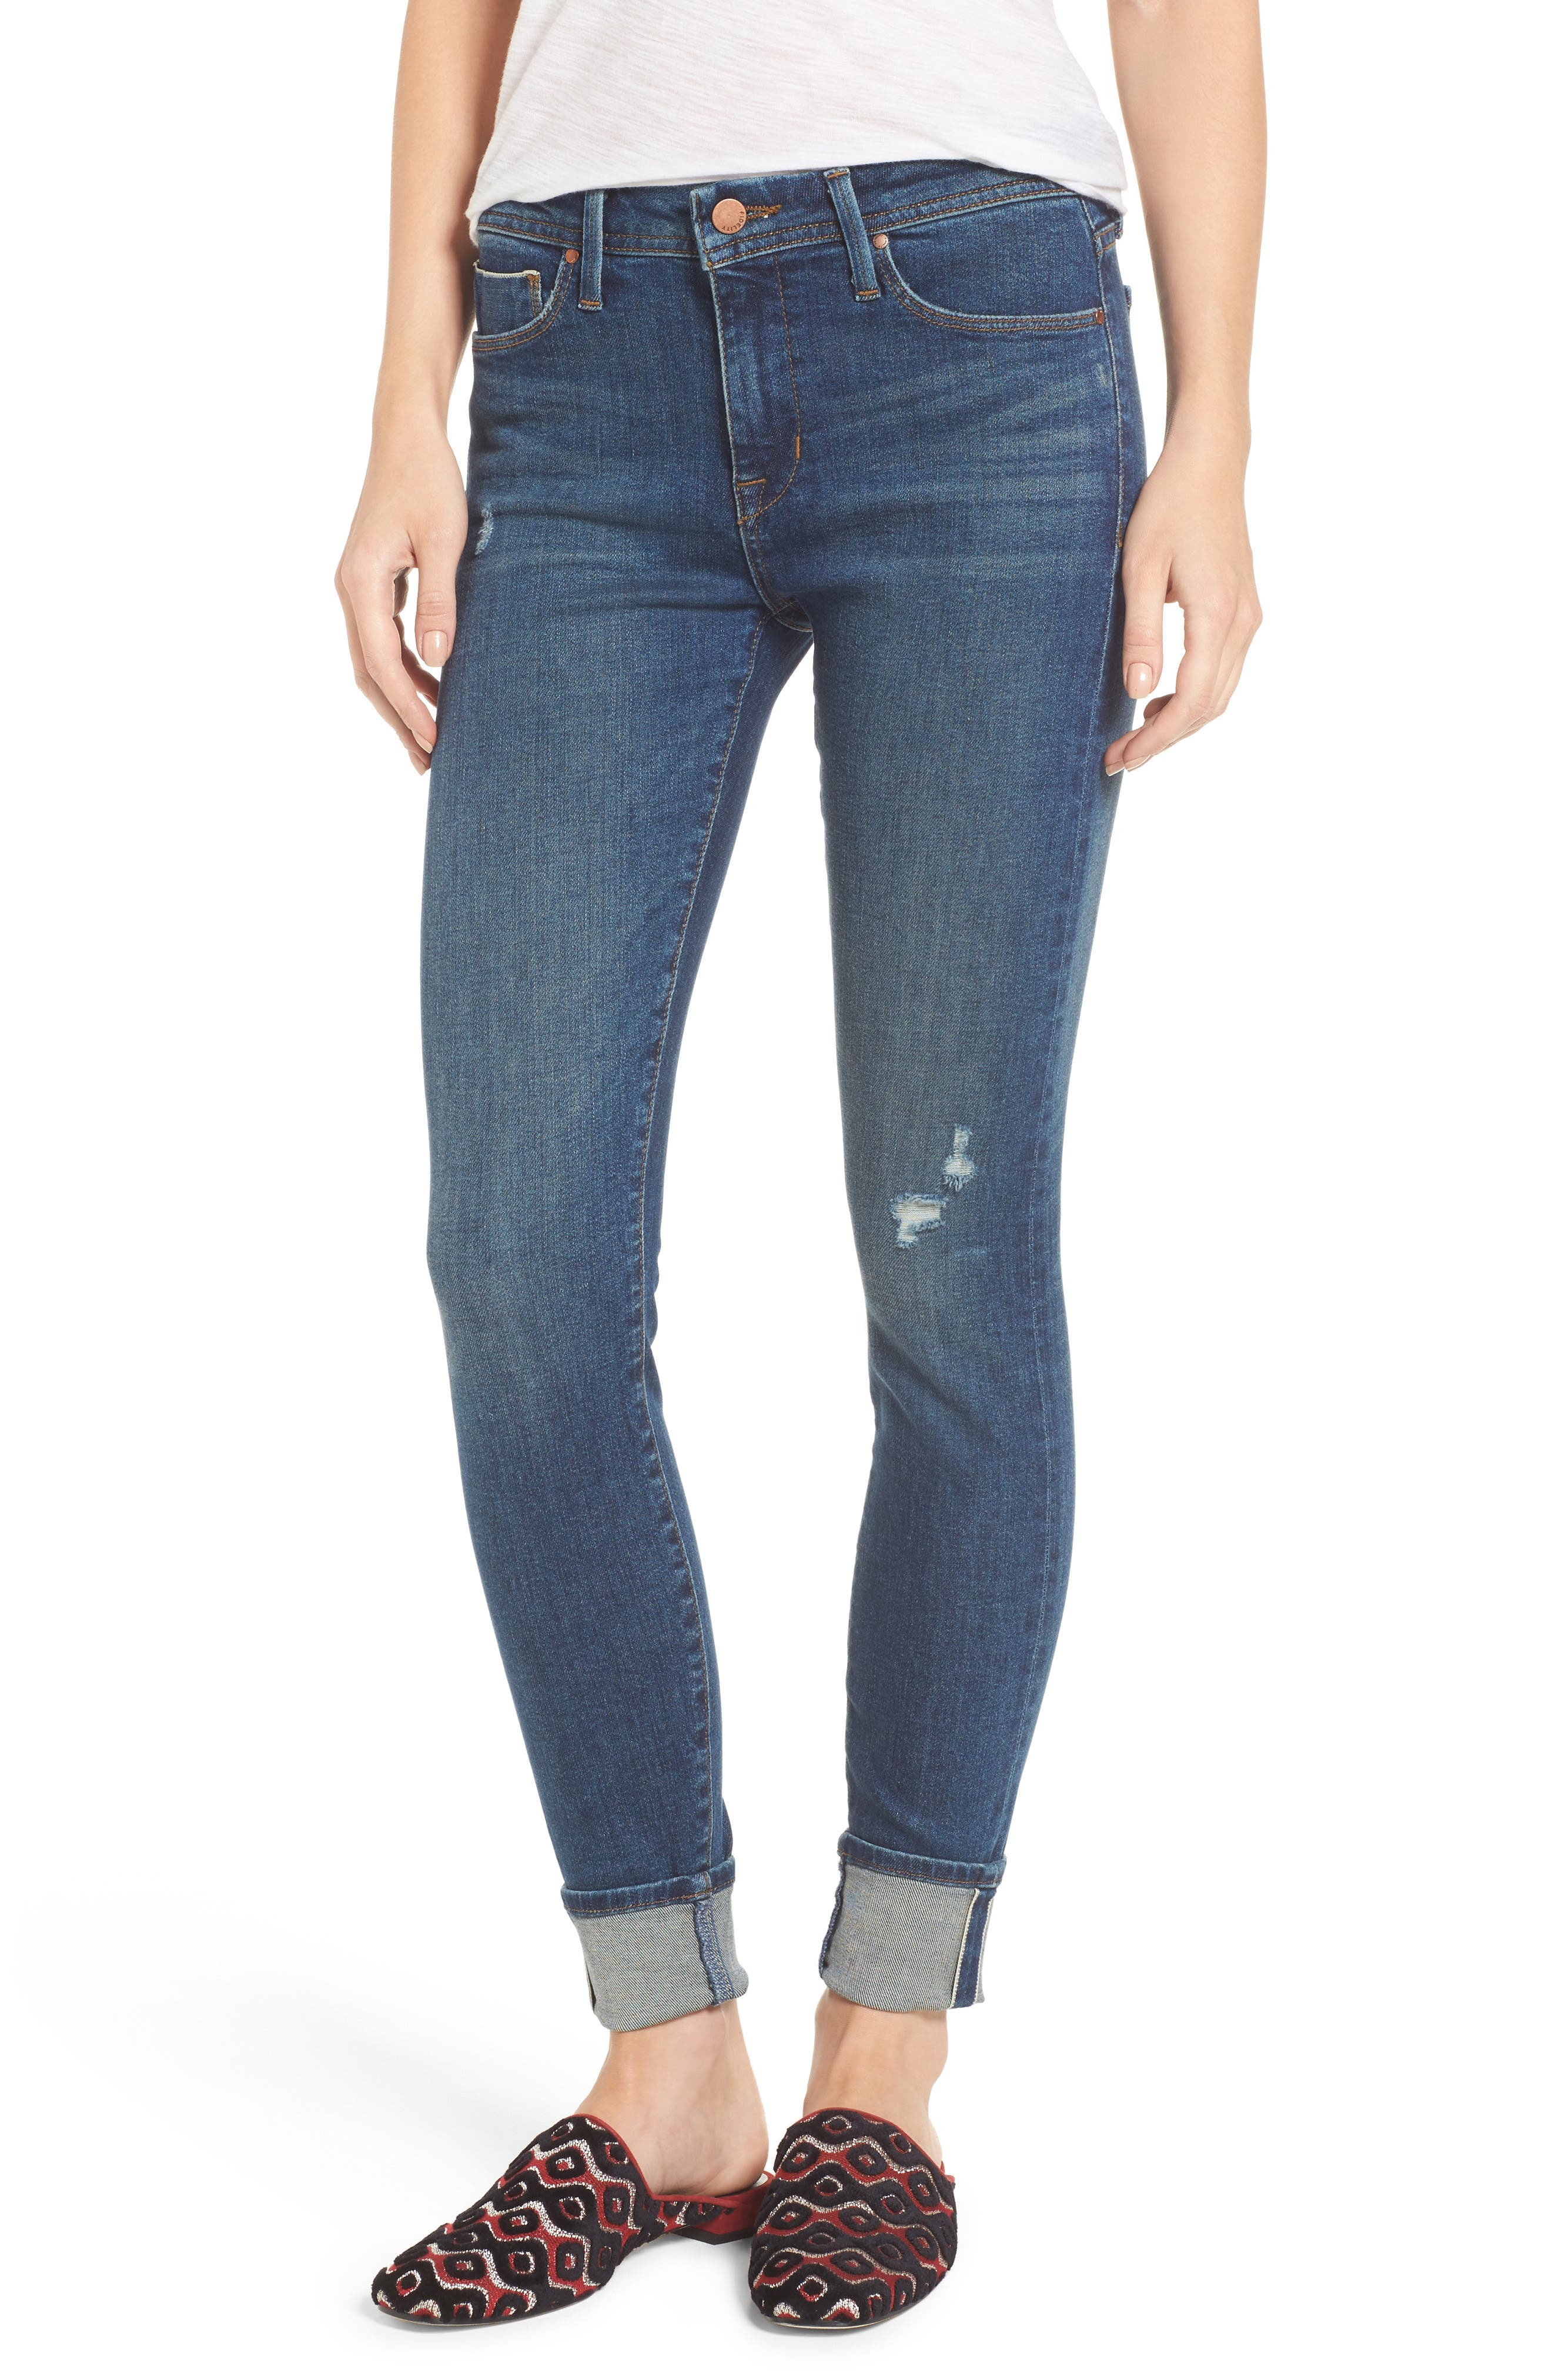 Main Image - Fidelity Denim Belvedere Crop Skinny Jeans (8 Year Aged)